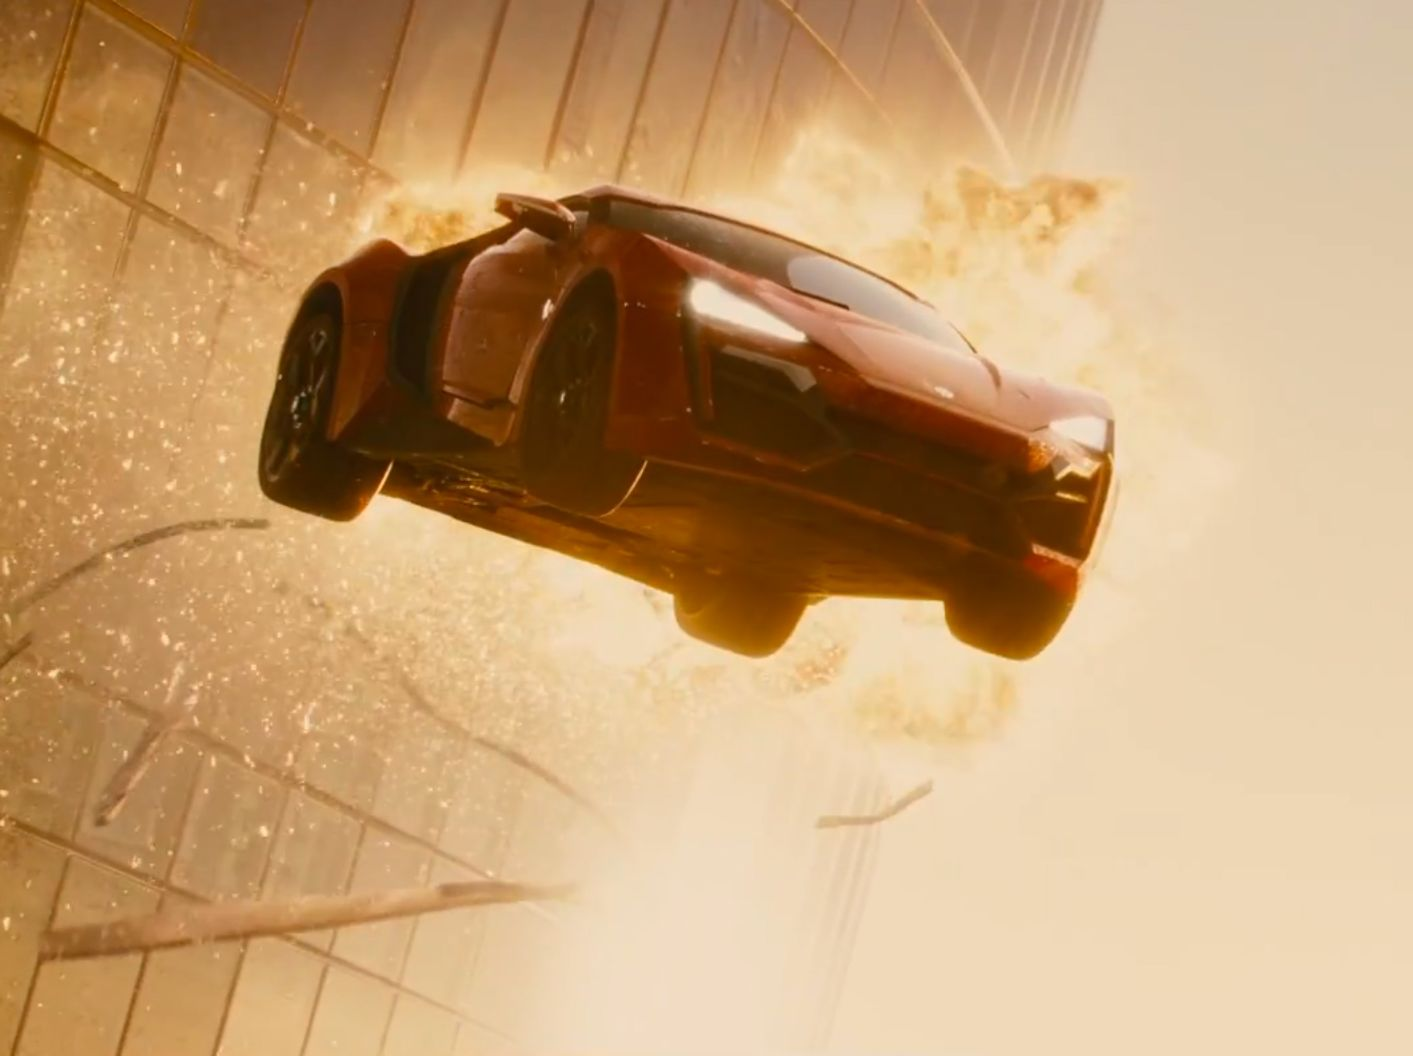 fast and furious 7 stream hd